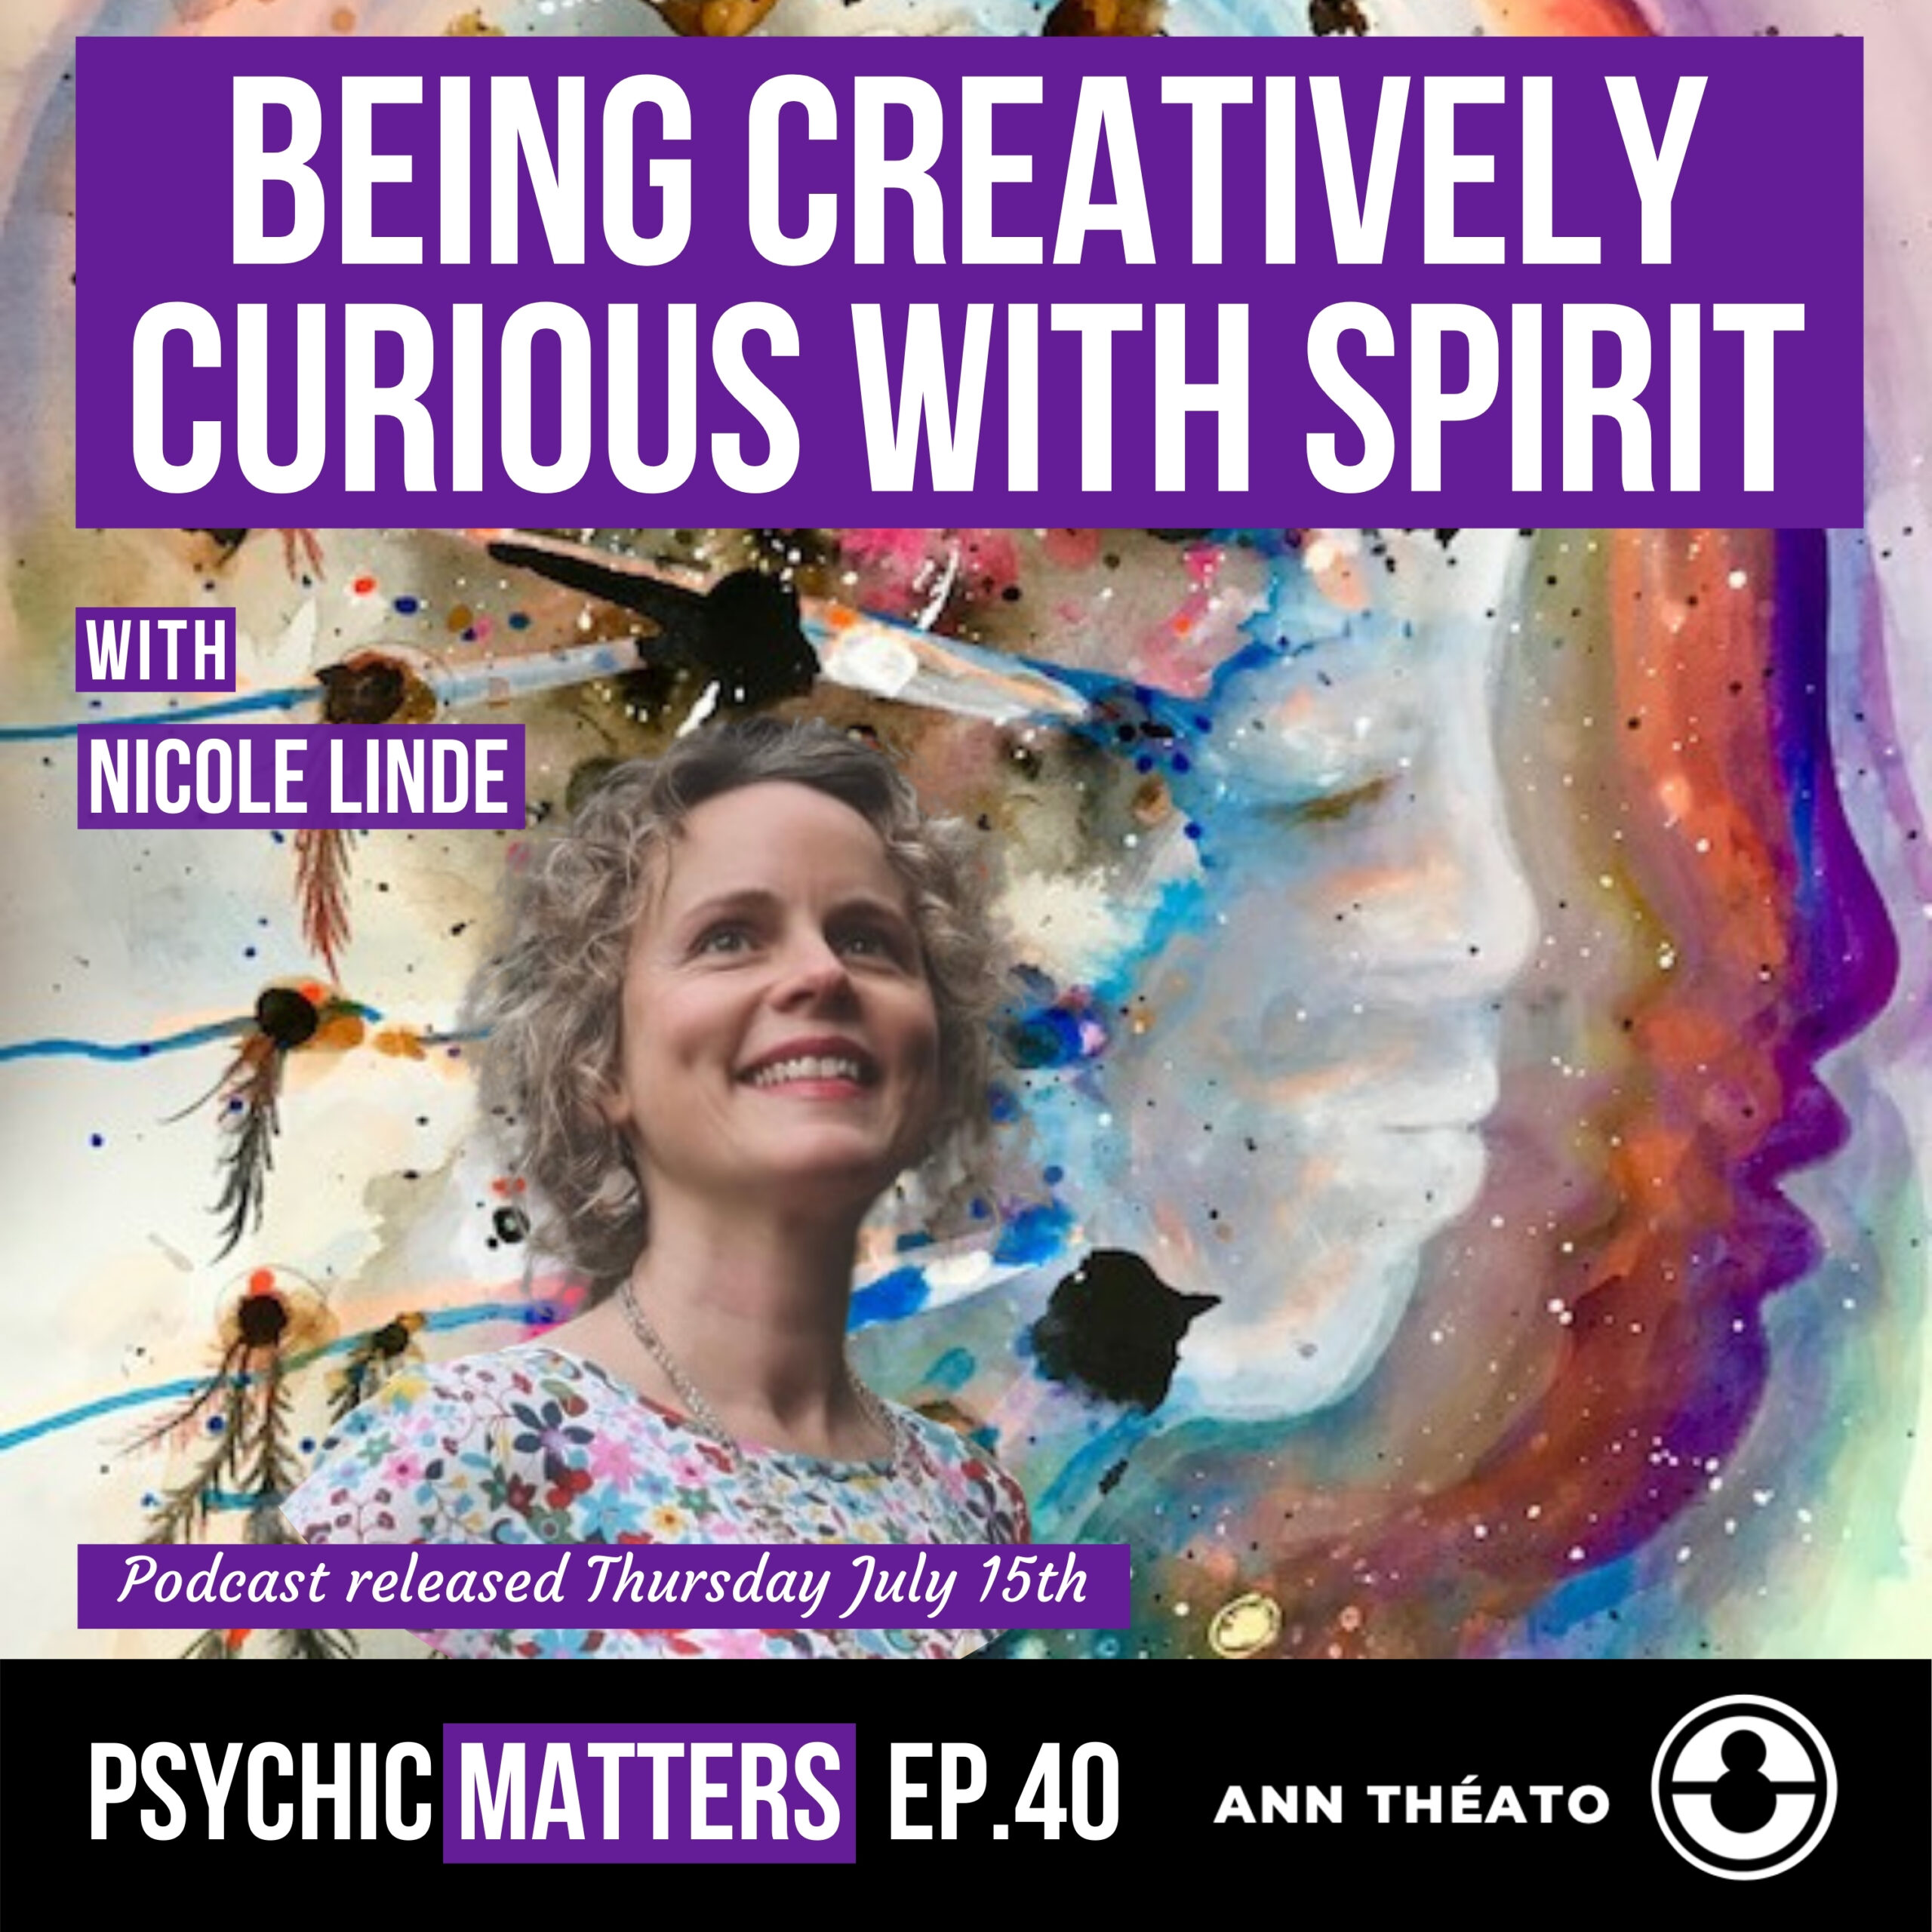 Episode 40 - Being Creatively Curious With Spirit